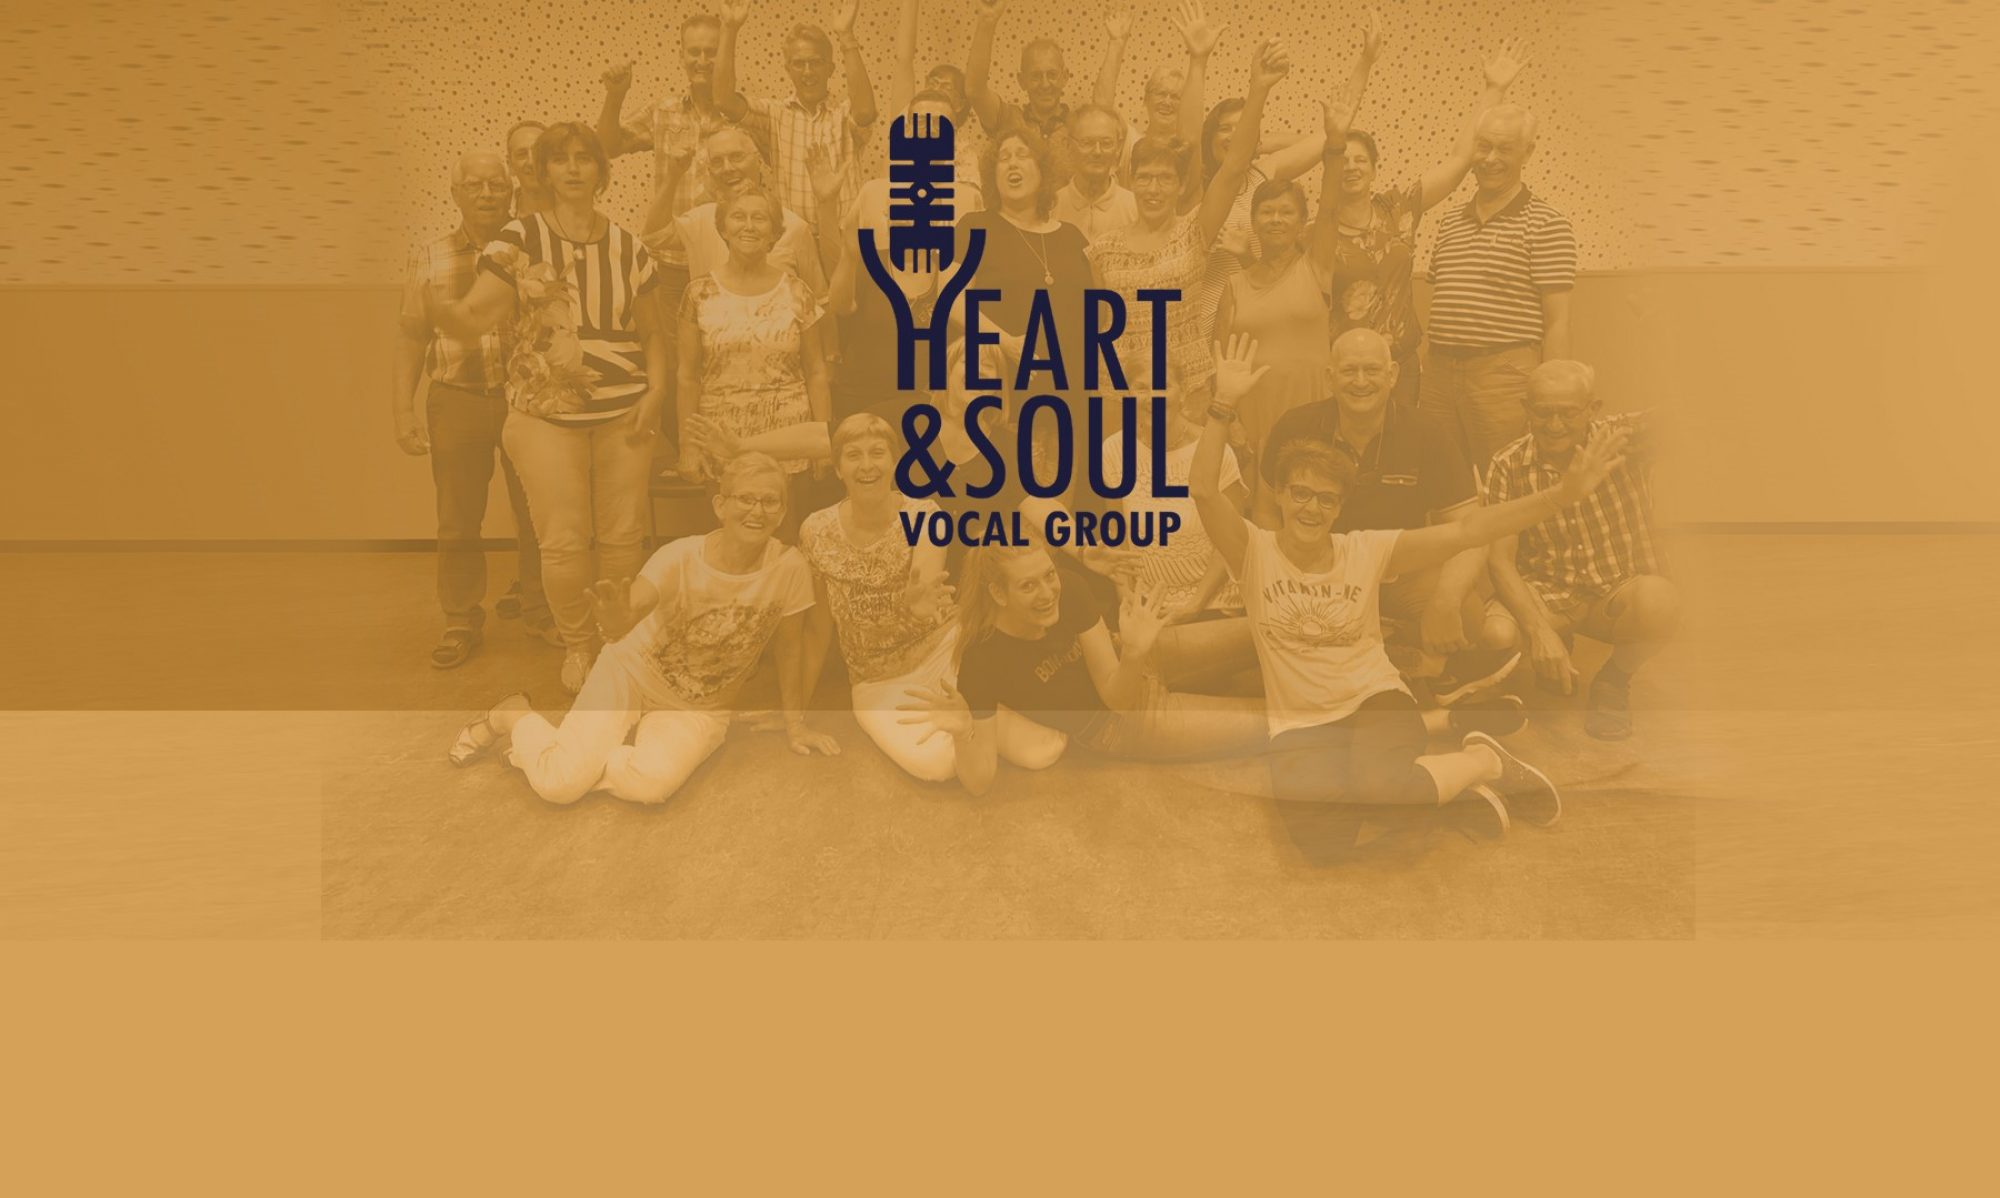 Vocal Group Heart & Soul Someren-Heide